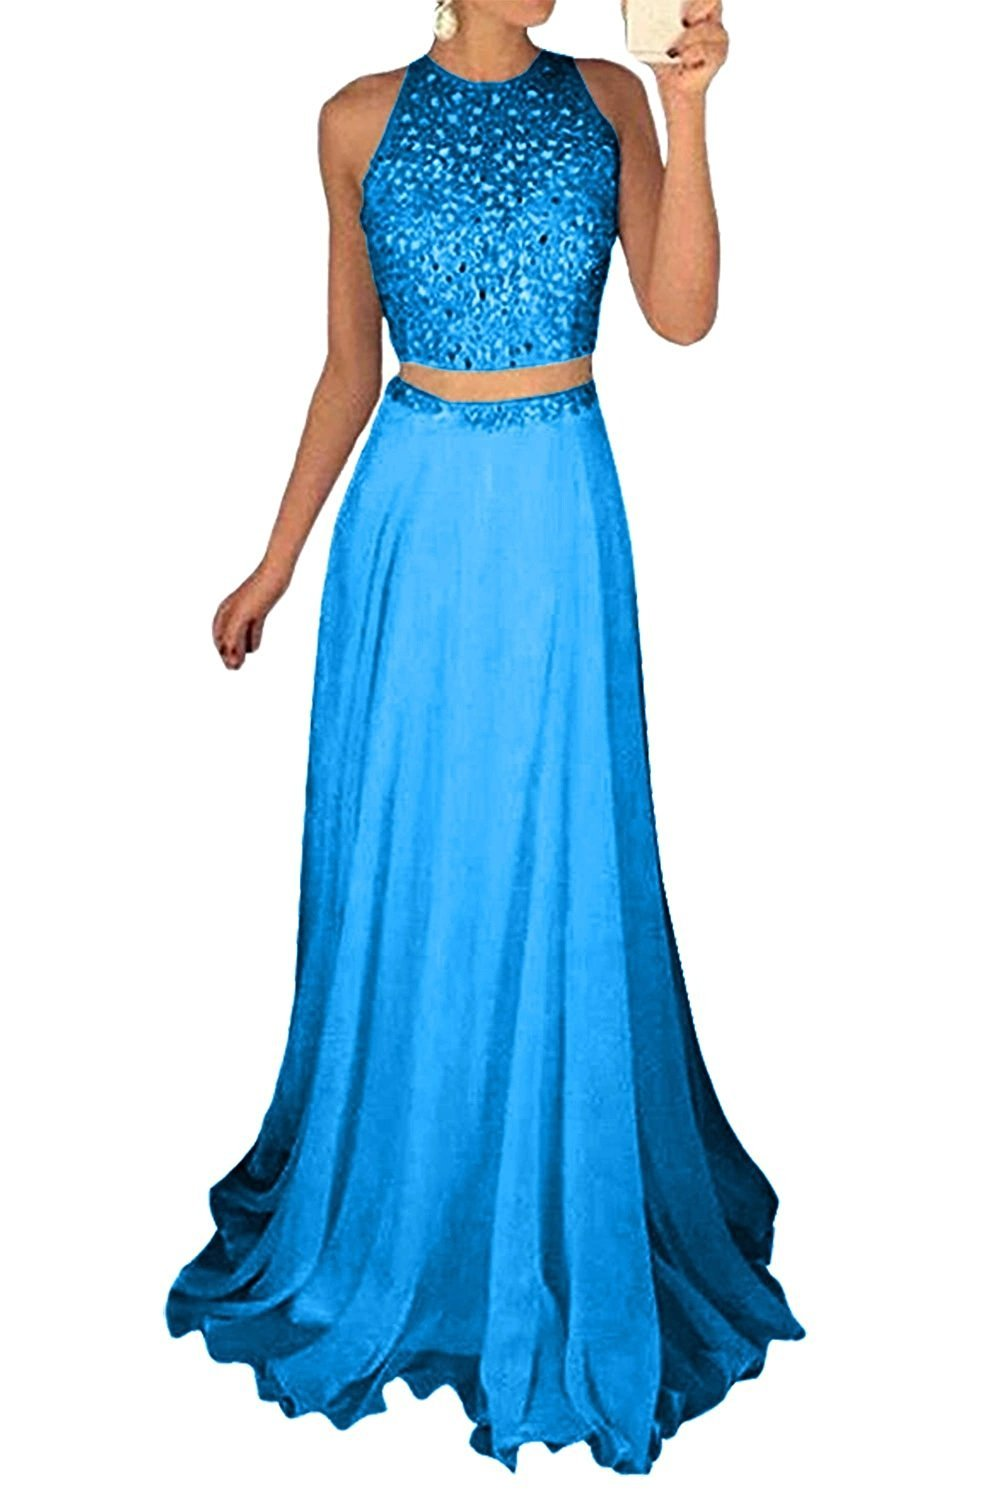 a731c875354 Icy Sun Women's Long Two Piece Prom Dresses with Sparkly Sequins Evening  Party Gowns ICYL079